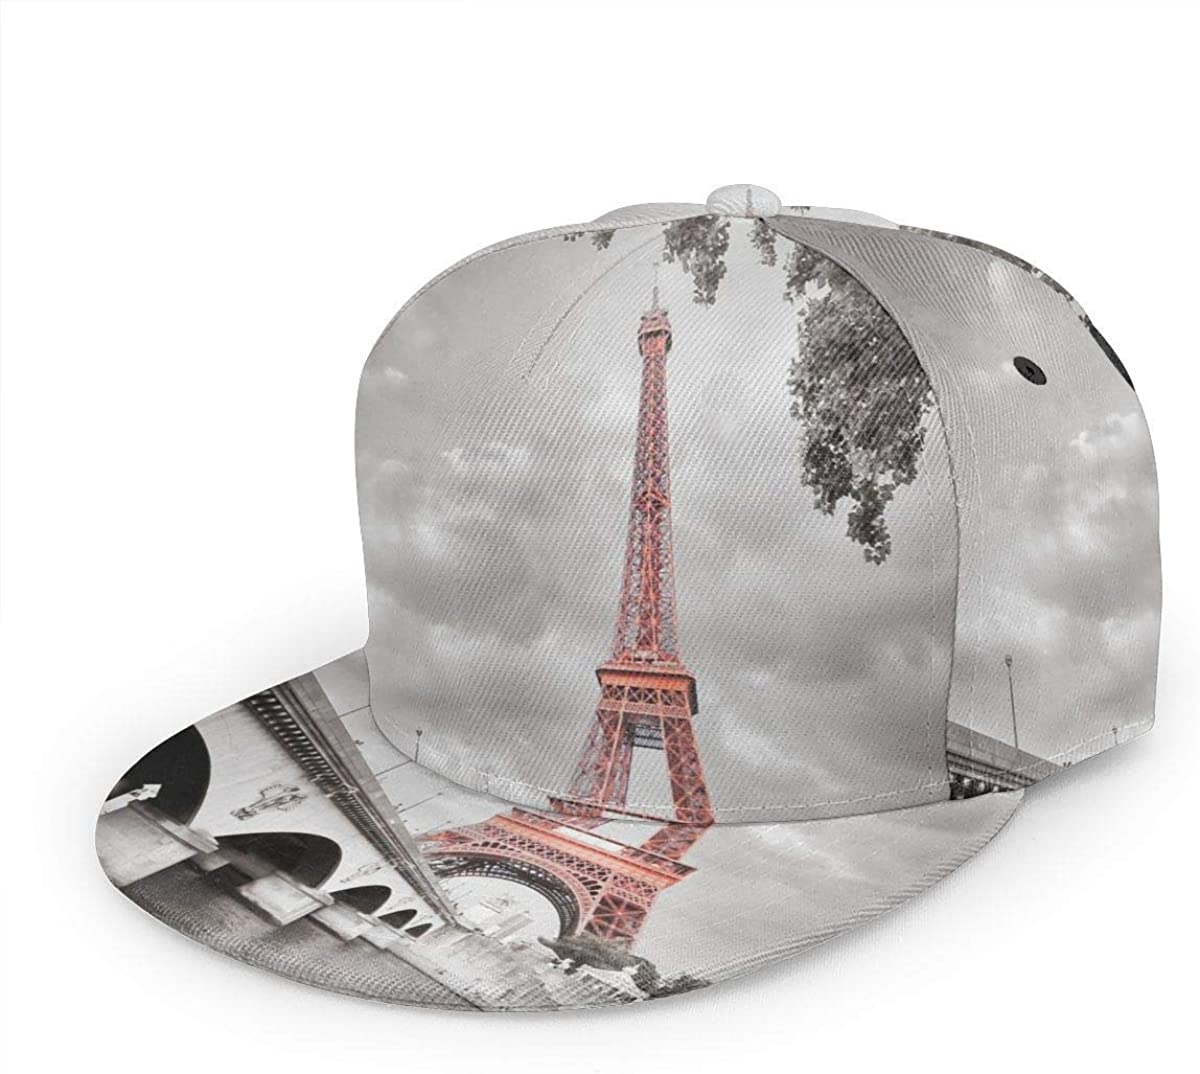 Eiffel Tower Bridge Capital City Lightweight Unisex Baseball Caps Adjustable Breathable Sun Hat for Sport Outdoor Black